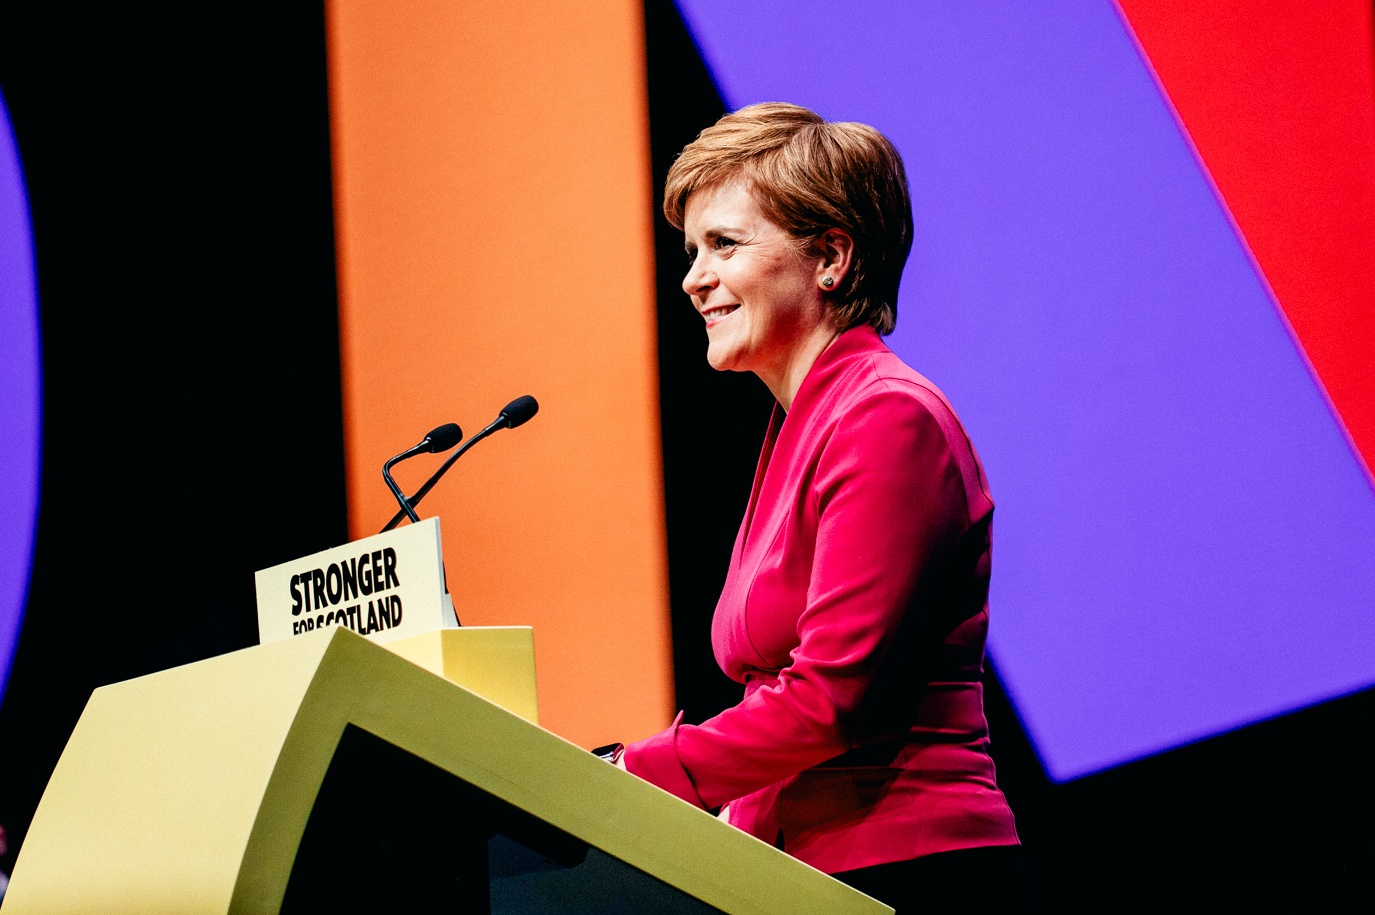 Nicola Sturgeon: Nothing but chaos since 2014